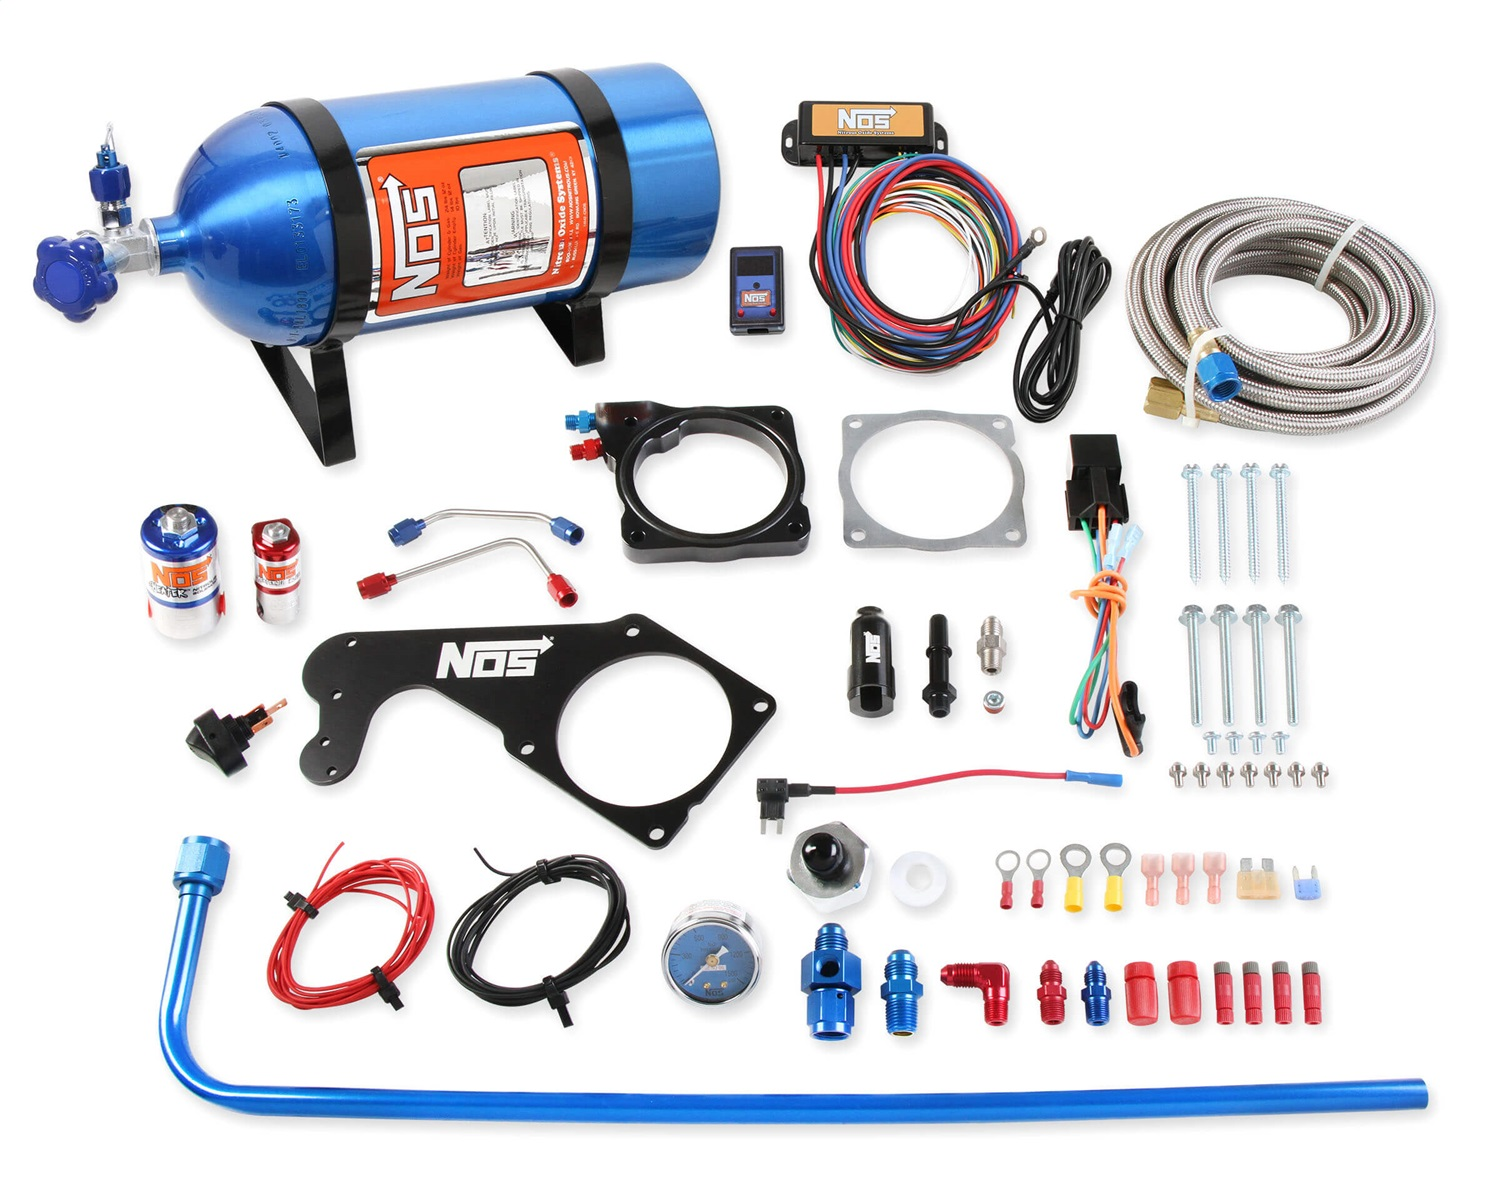 small resolution of nos 05184nos complete nitrous system 250 rwhp max incl nitrousnos 05184nos complete nitrous system